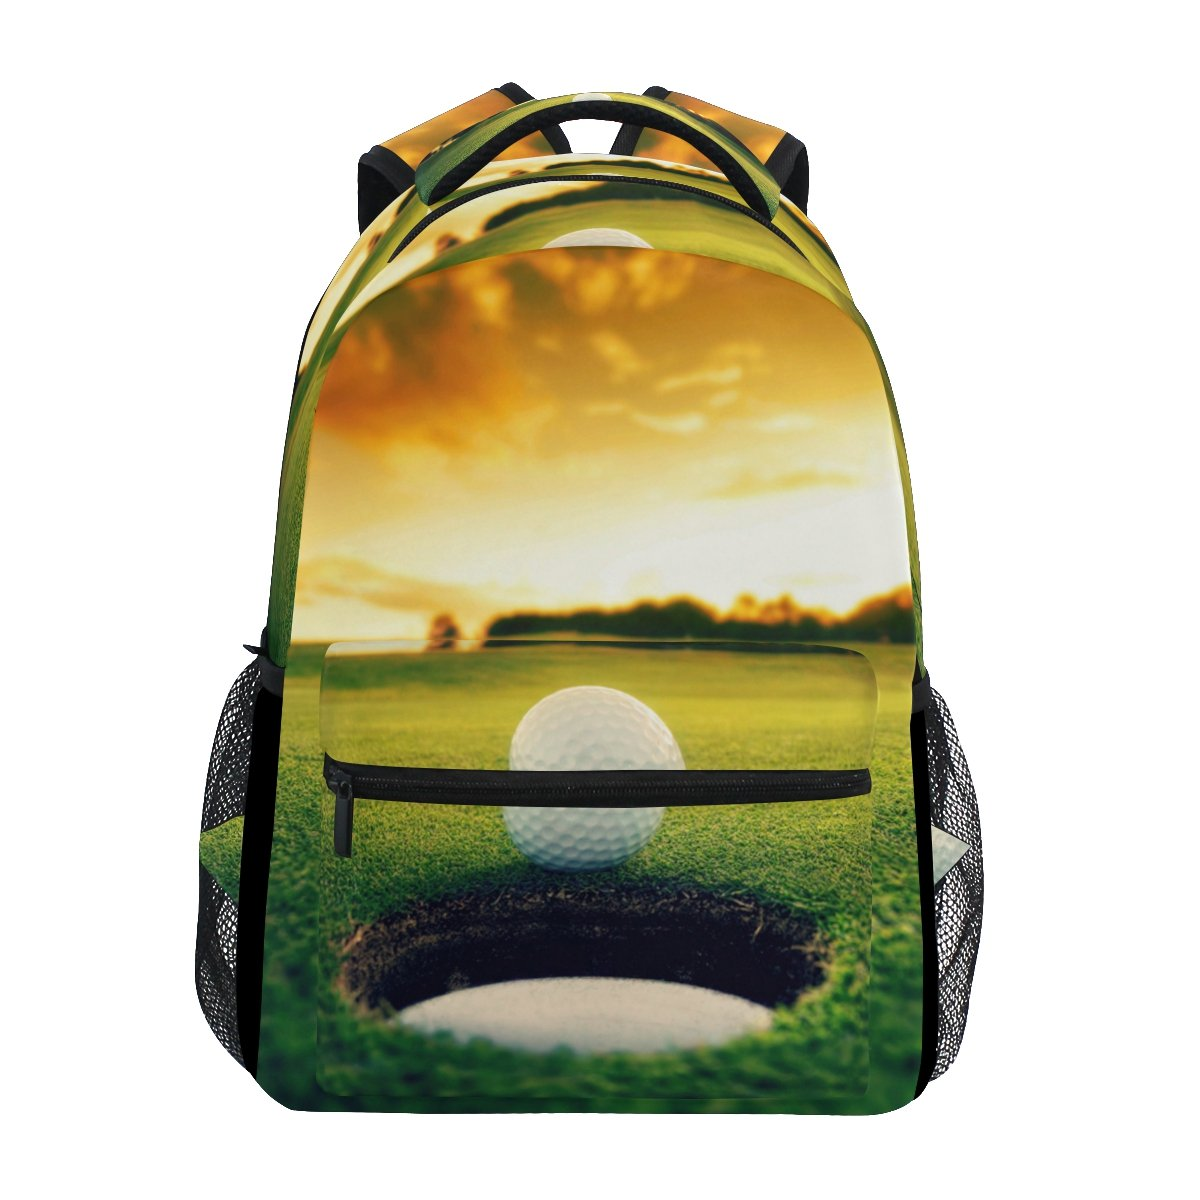 LORVIES Golf Ball Near Hole Casual Backpack School Bag Travel Daypack